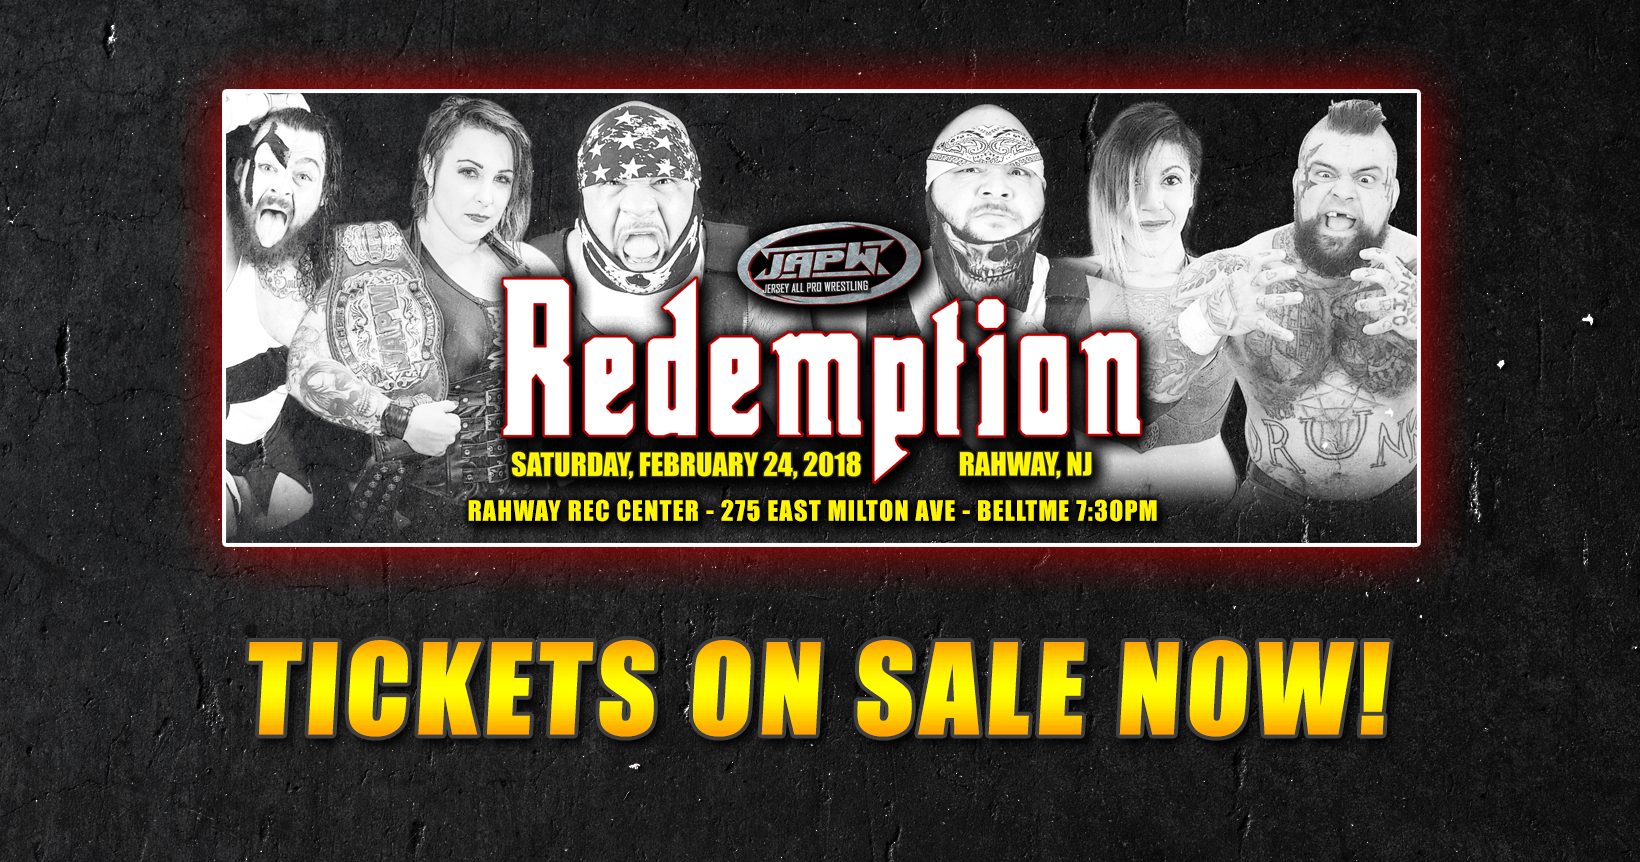 2/24 Redemption Tickets on sale now